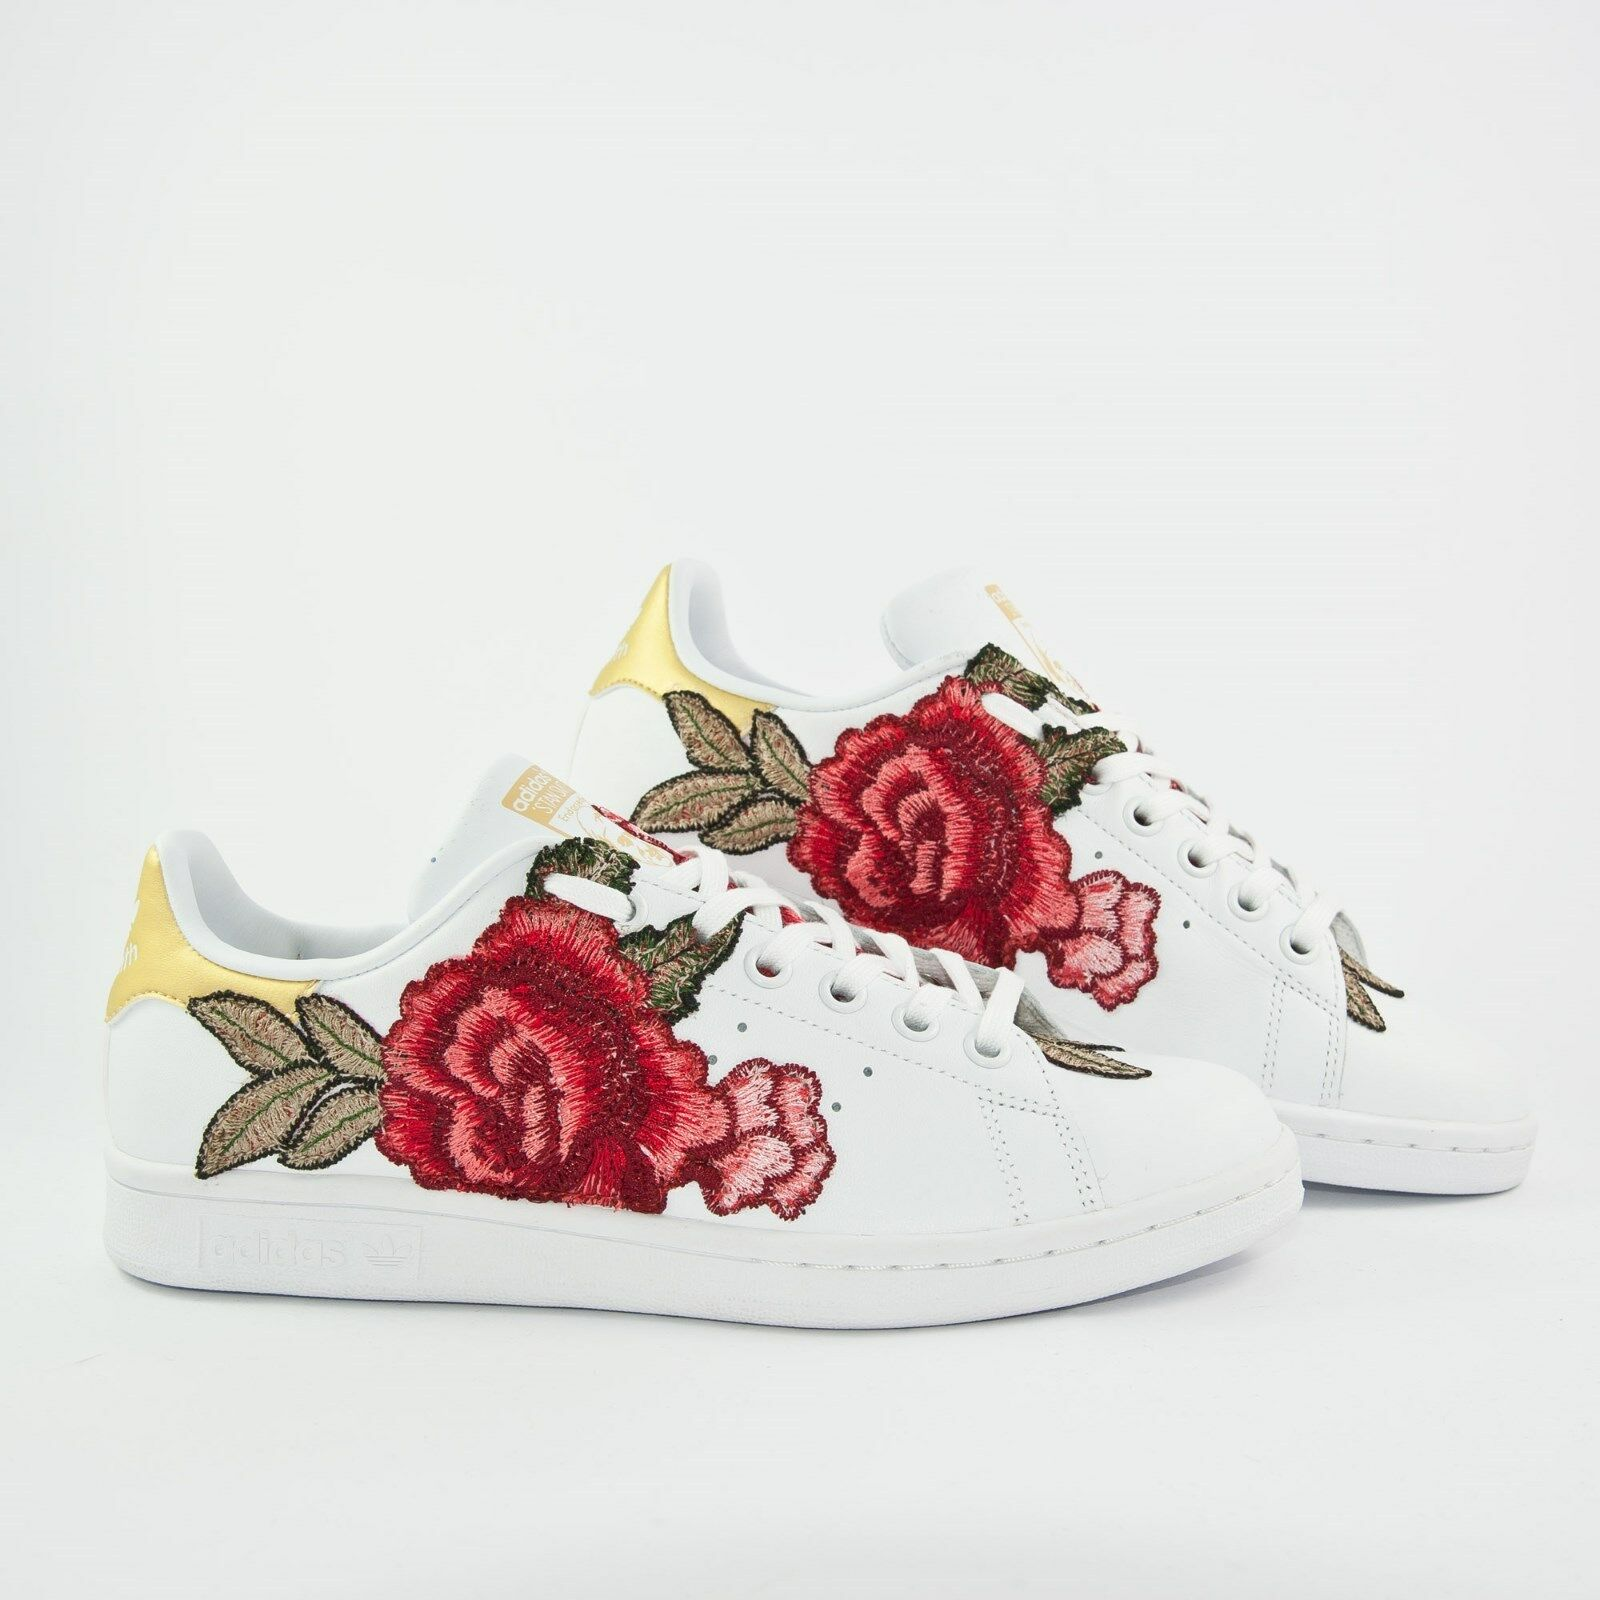 scarpe adidas stan smith  con peach fiorata